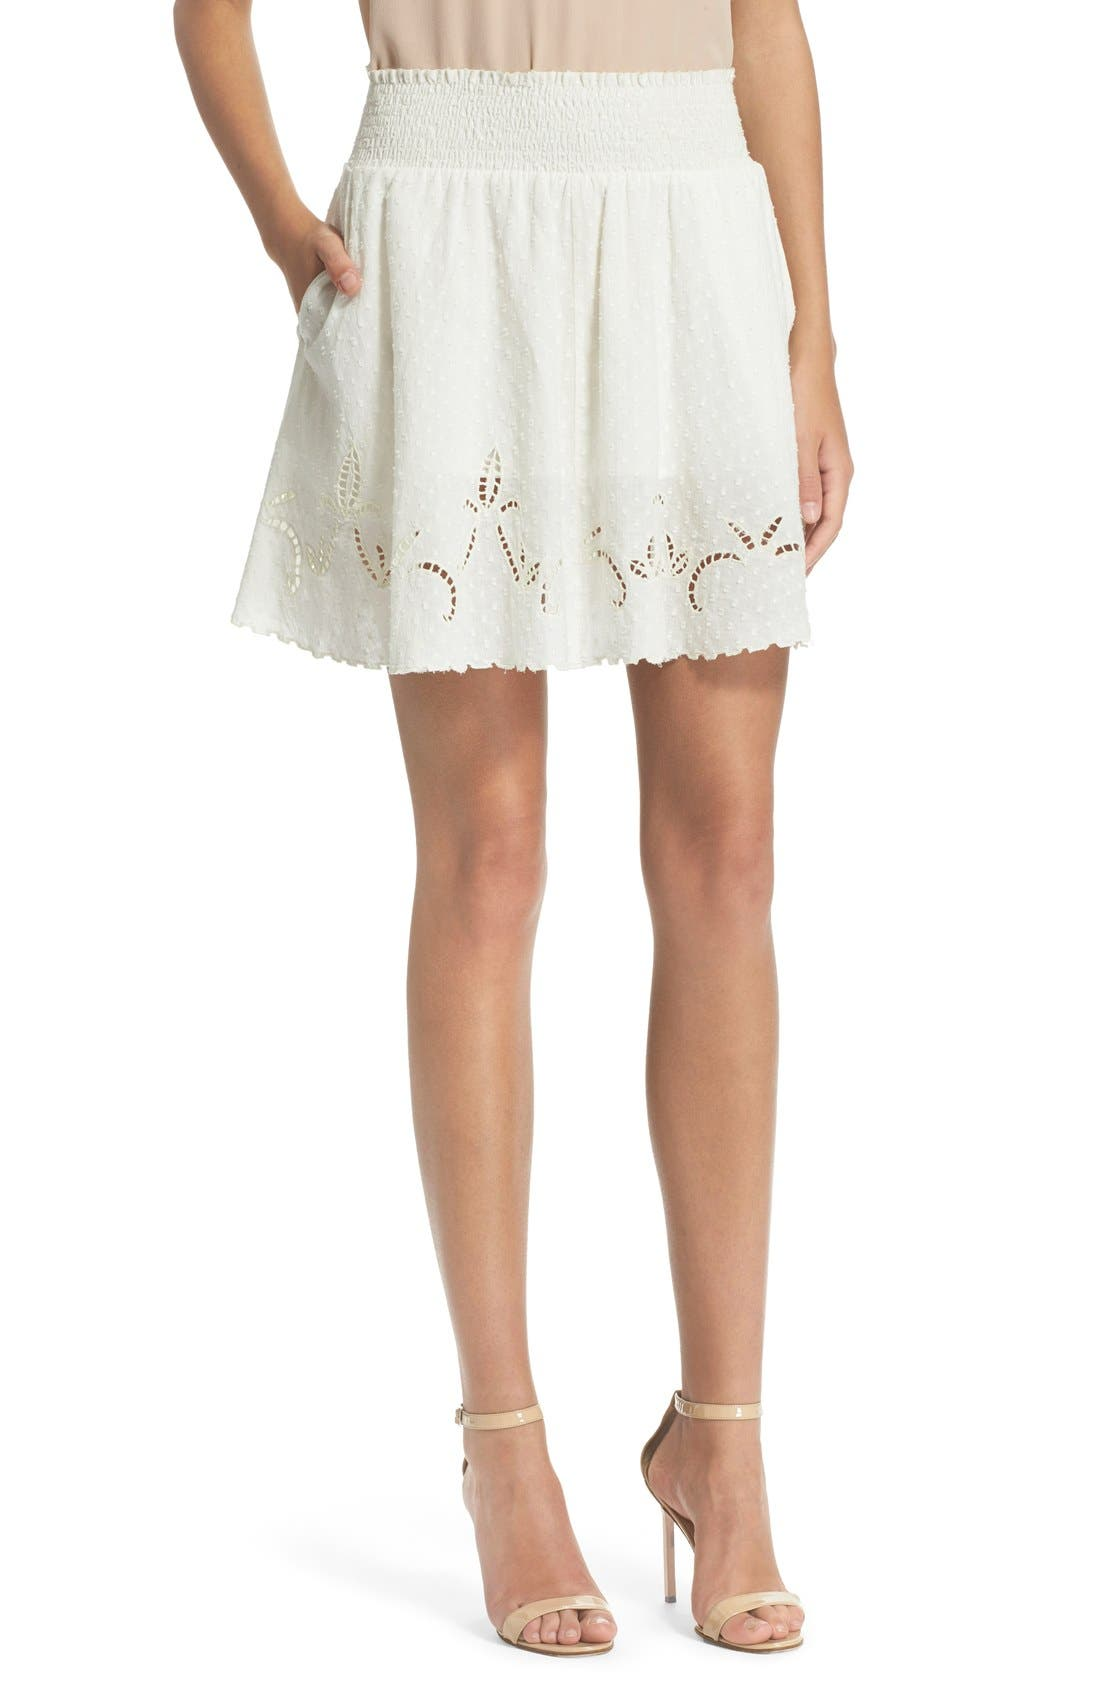 Alternate Image 1 Selected - The Kooples Embroidered Cotton Dobby Skirt